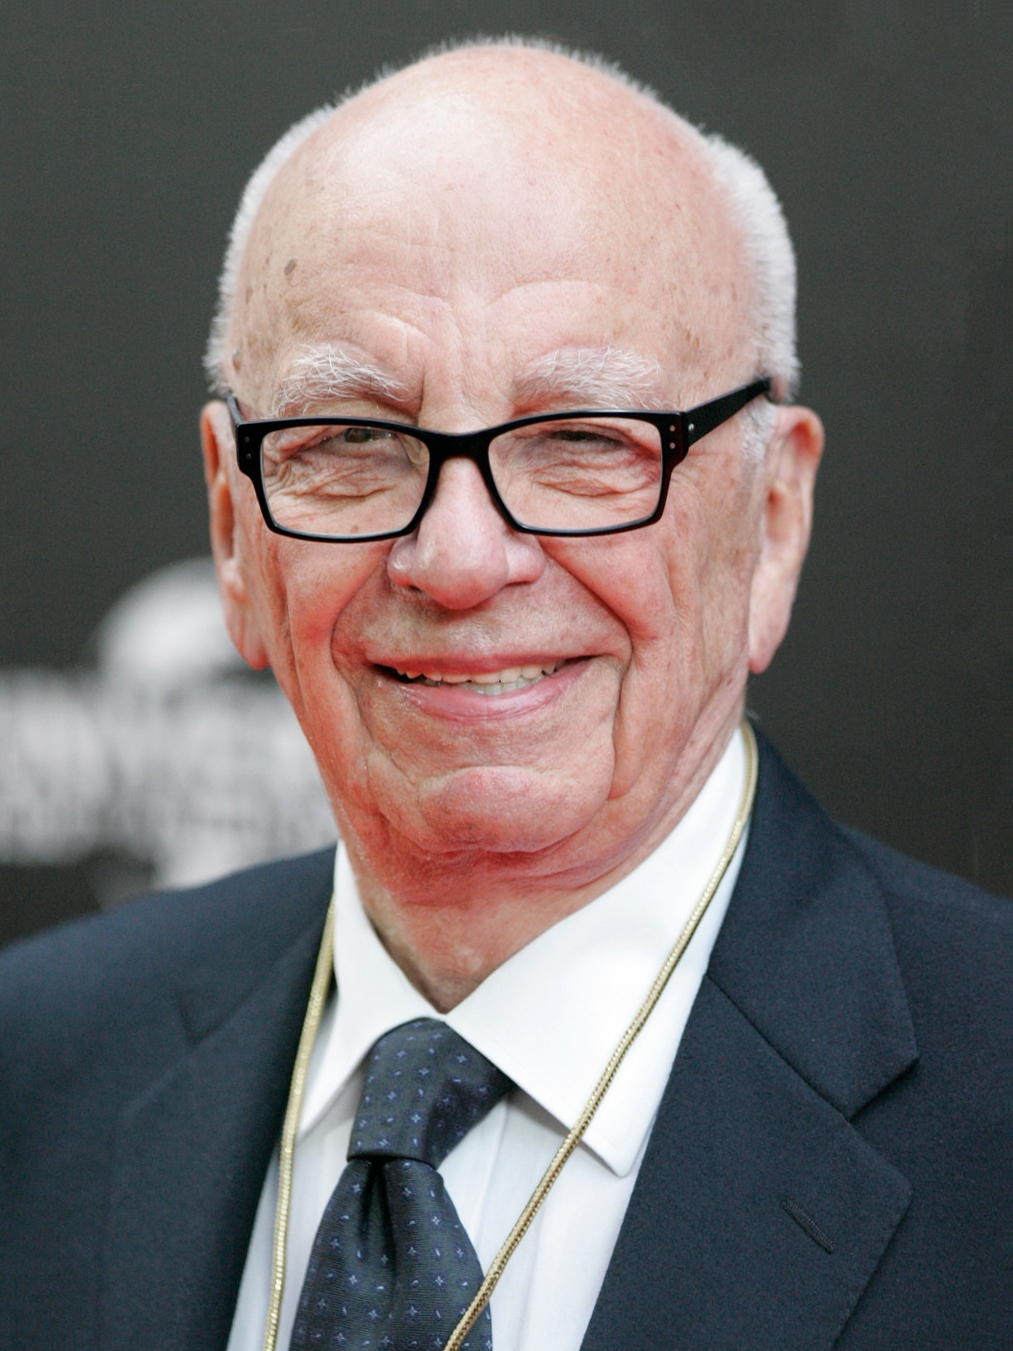 The 87-year old son of father Keith Murdoch and mother Elisabeth Joy Rupert Murdoch in 2018 photo. Rupert Murdoch earned a  million dollar salary - leaving the net worth at 14000 million in 2018